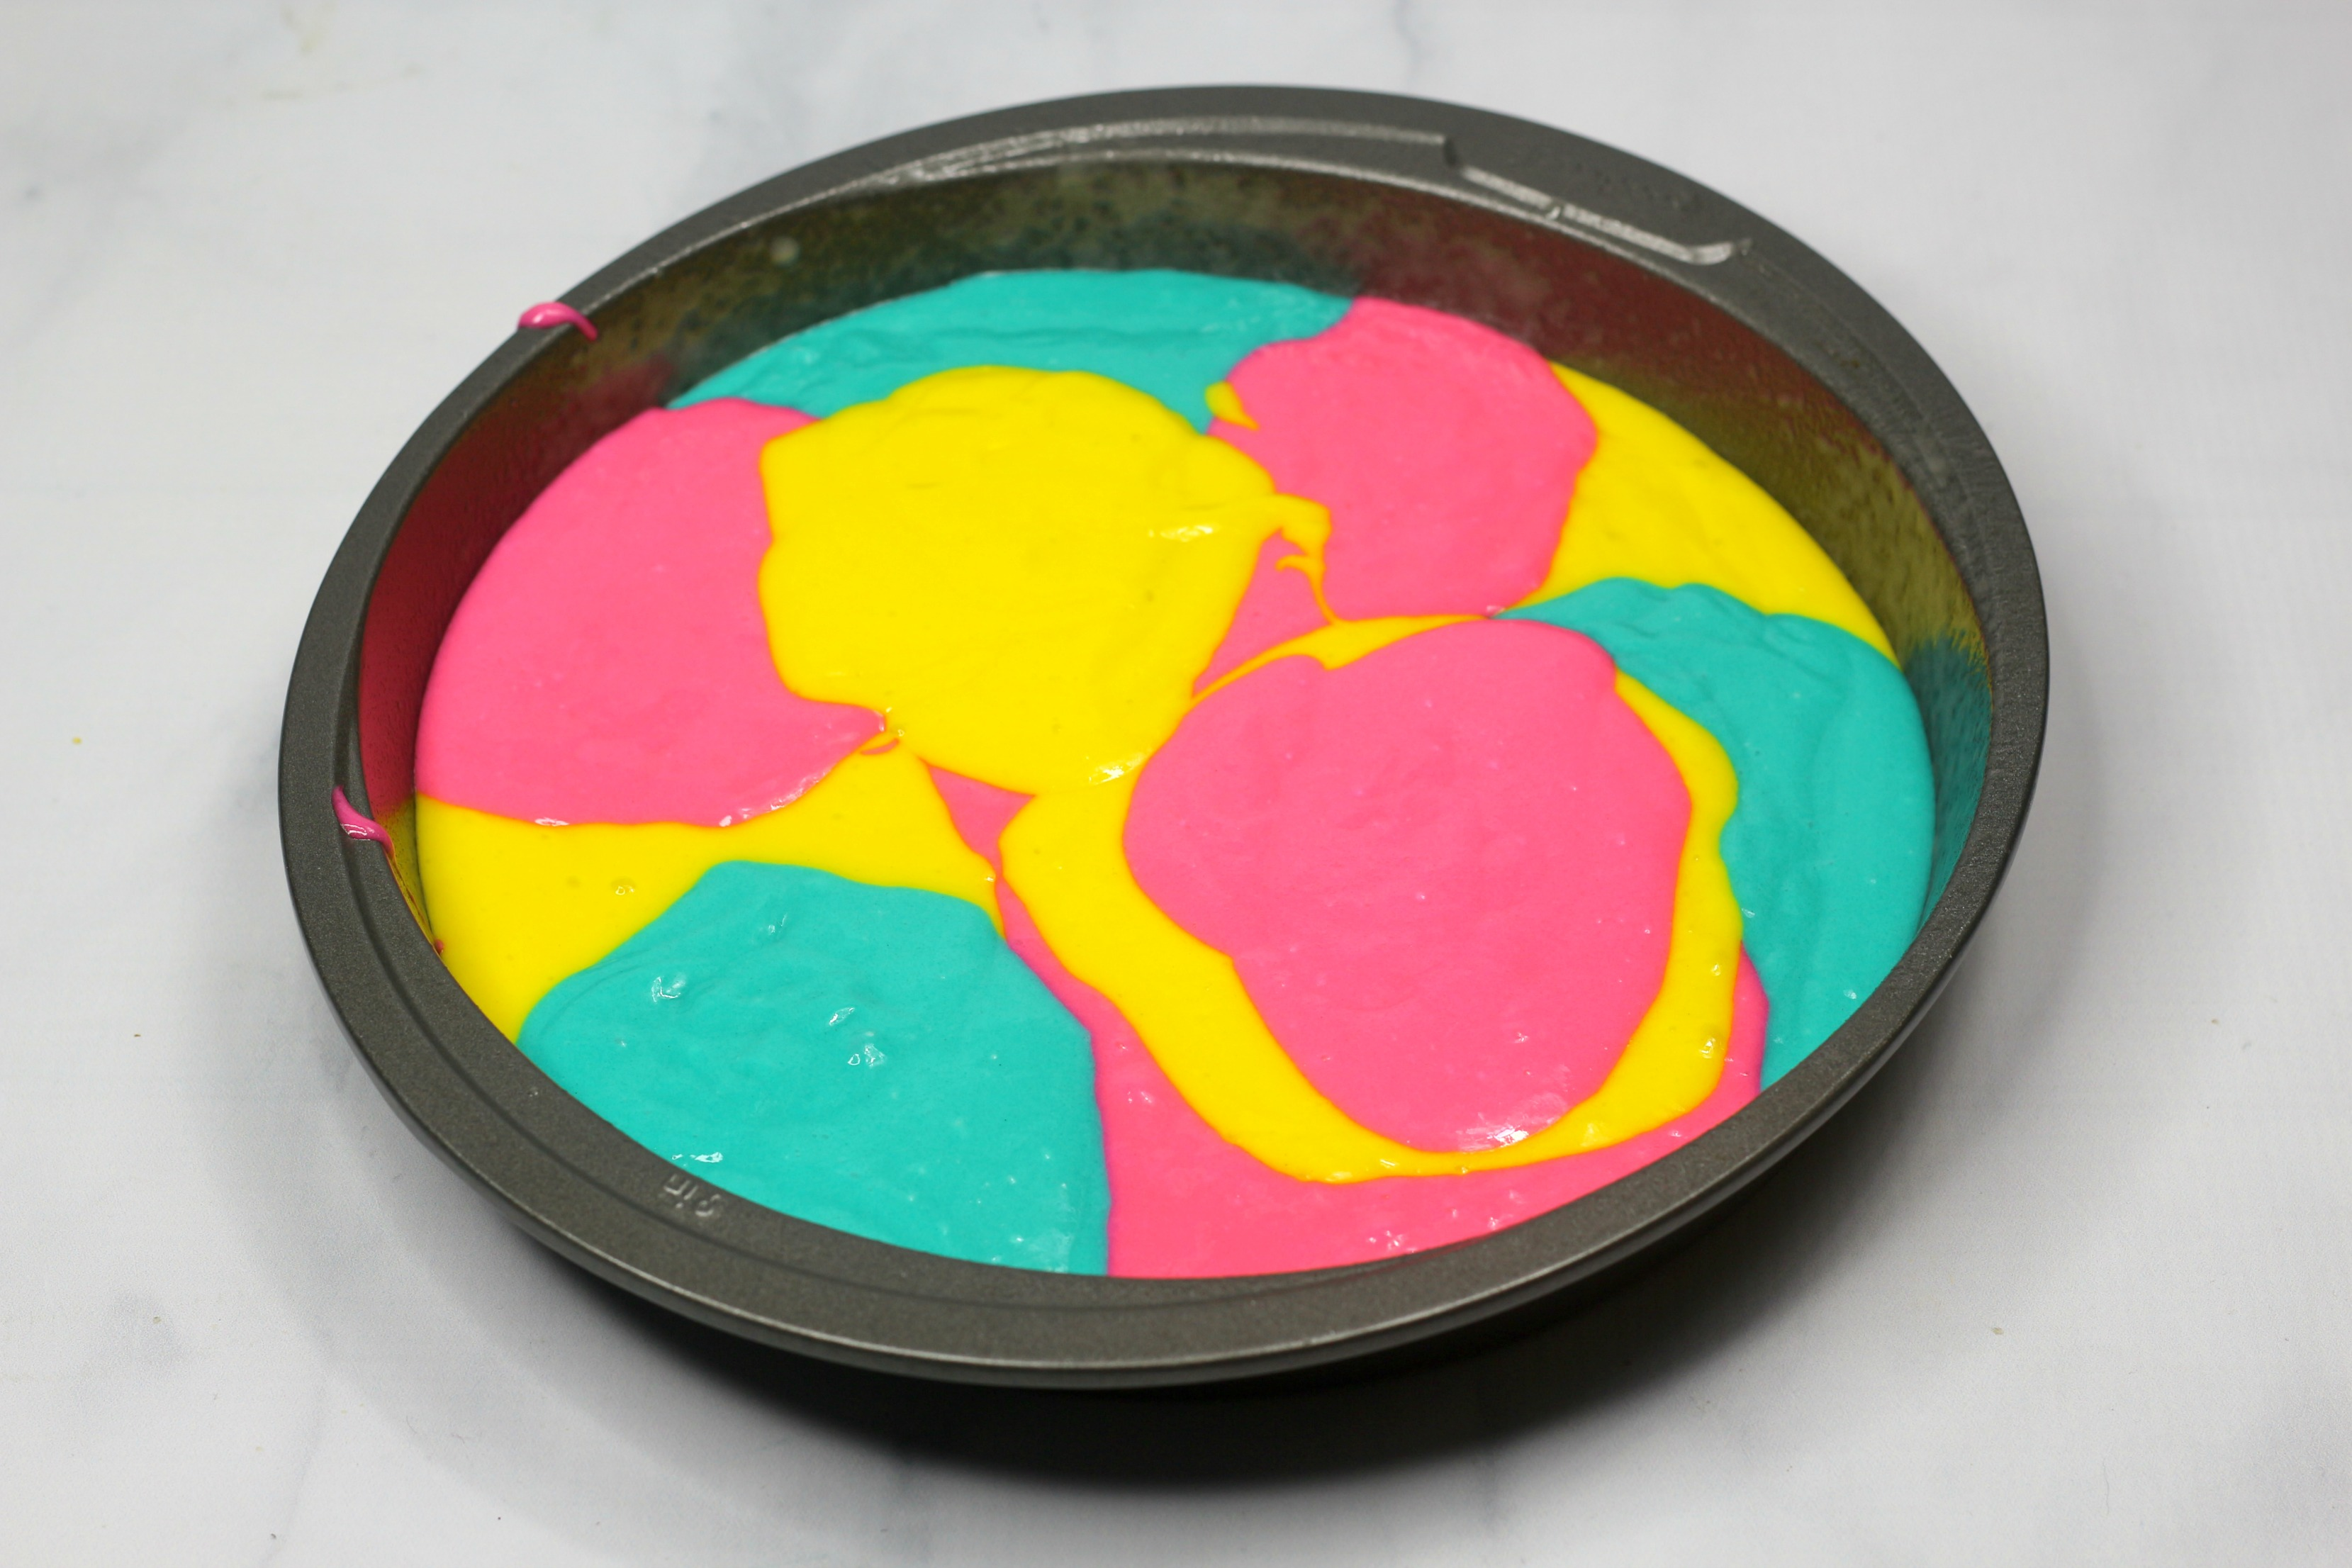 tie dy cake batter in a cake pan